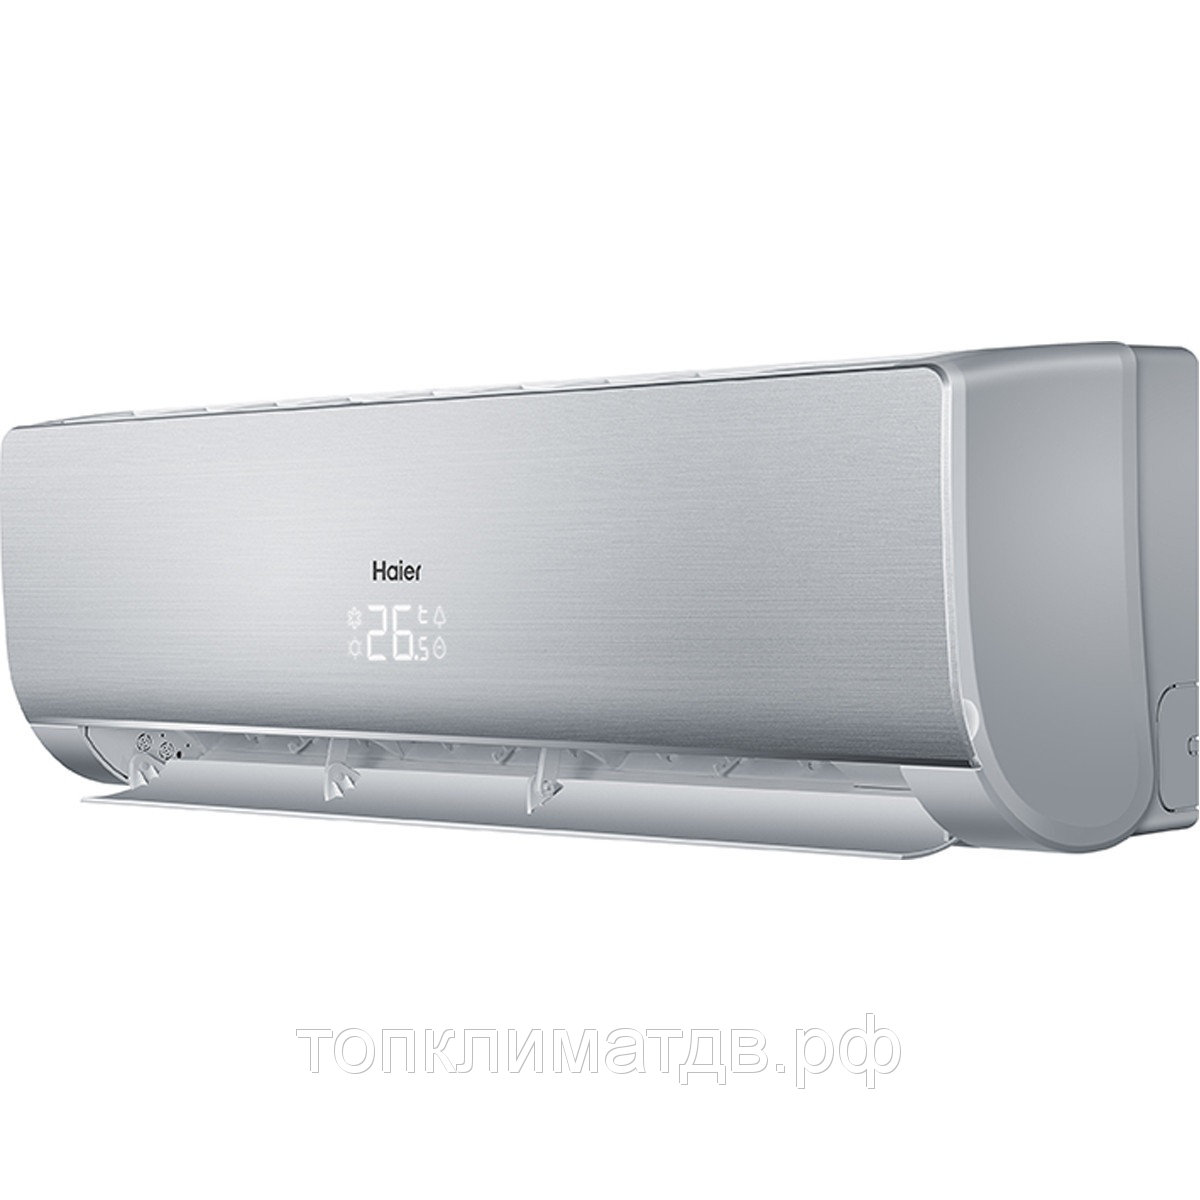 Сплит система Haier AS09NS2HRA 1U09BS3ERA LIGHTERA Inverter